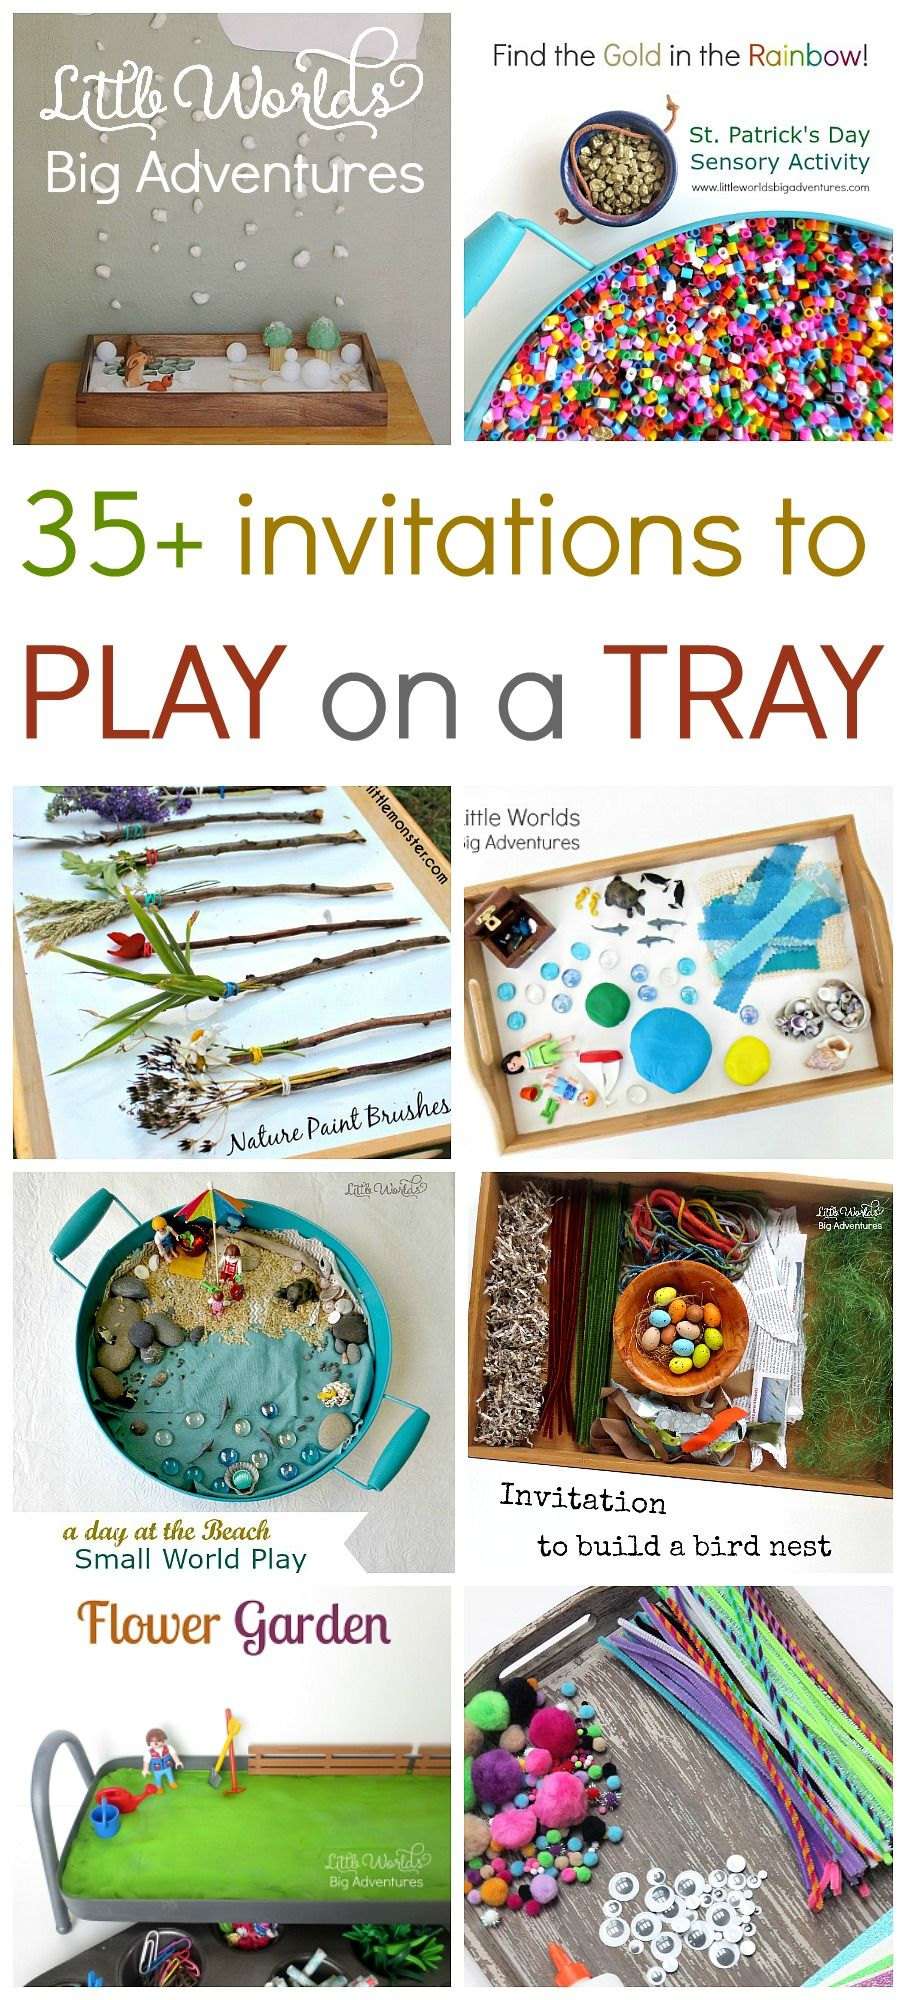 35 Ideas to Play on a Tray, Invitations to Play, Create and Explore! | Little Worlds Big Adventures #play #kidsactivities #preschool #toddler #sensoryplay #smallworldplay #creativity #imagination #invitationtoplay